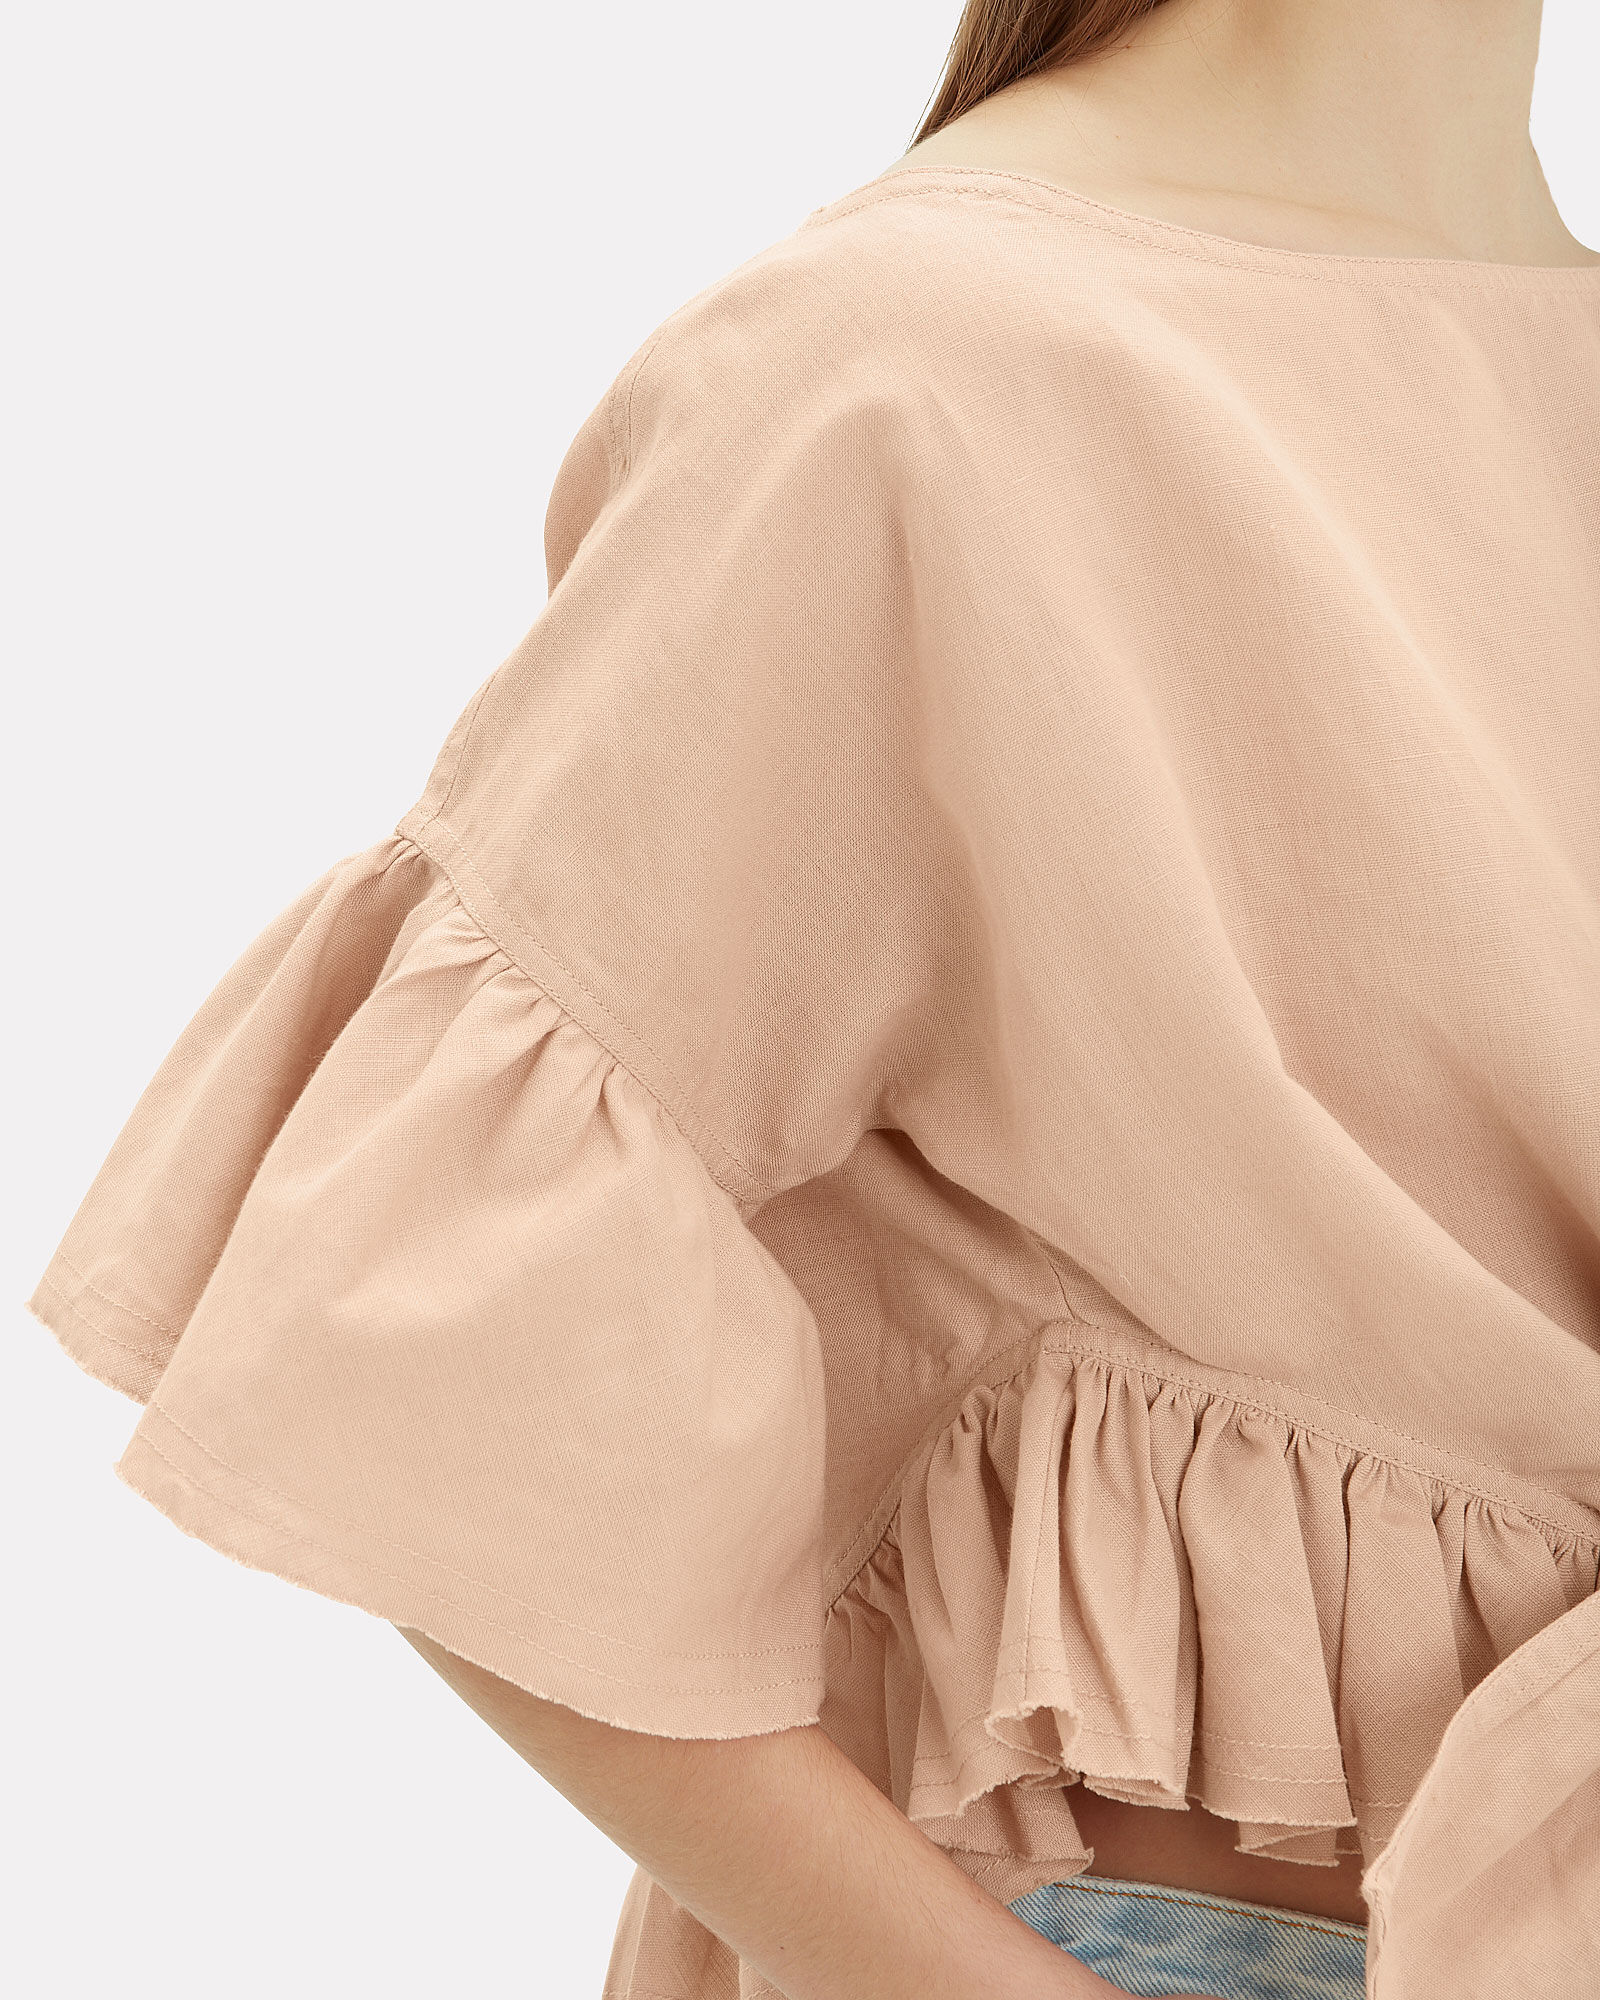 Linn Ruffle Crop Top, BEIGE, hi-res